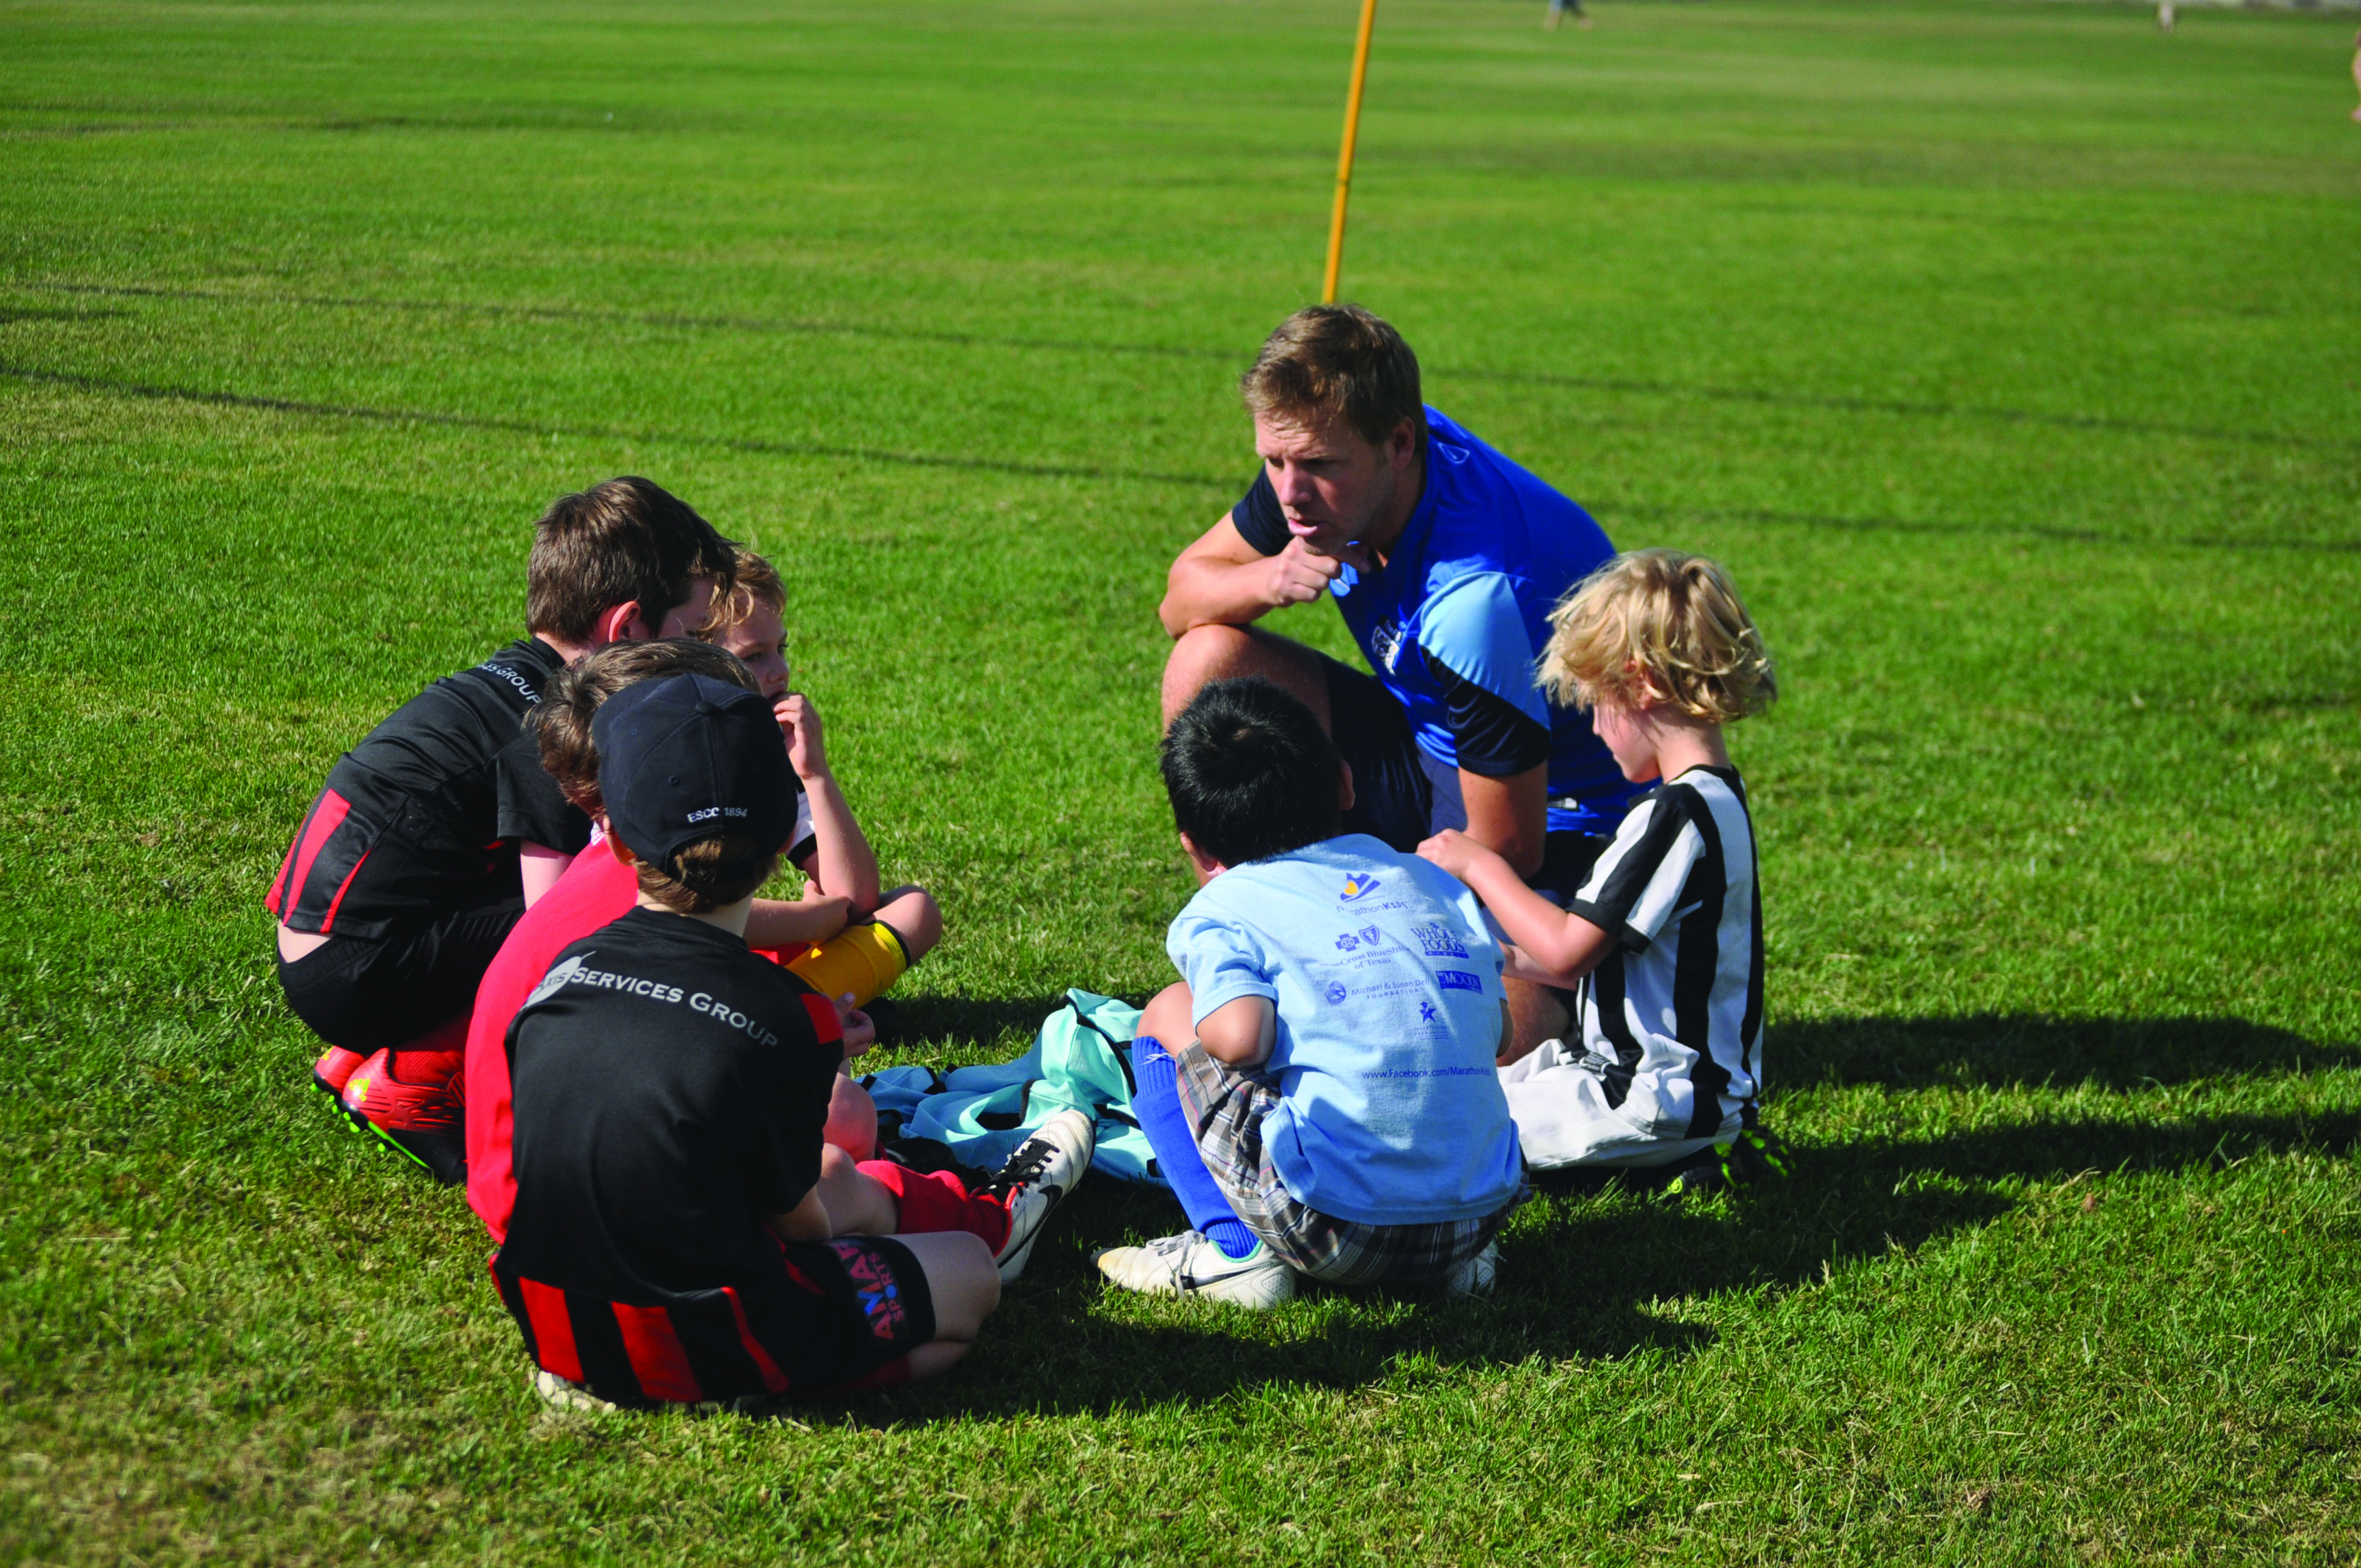 Tips to improve your coaching